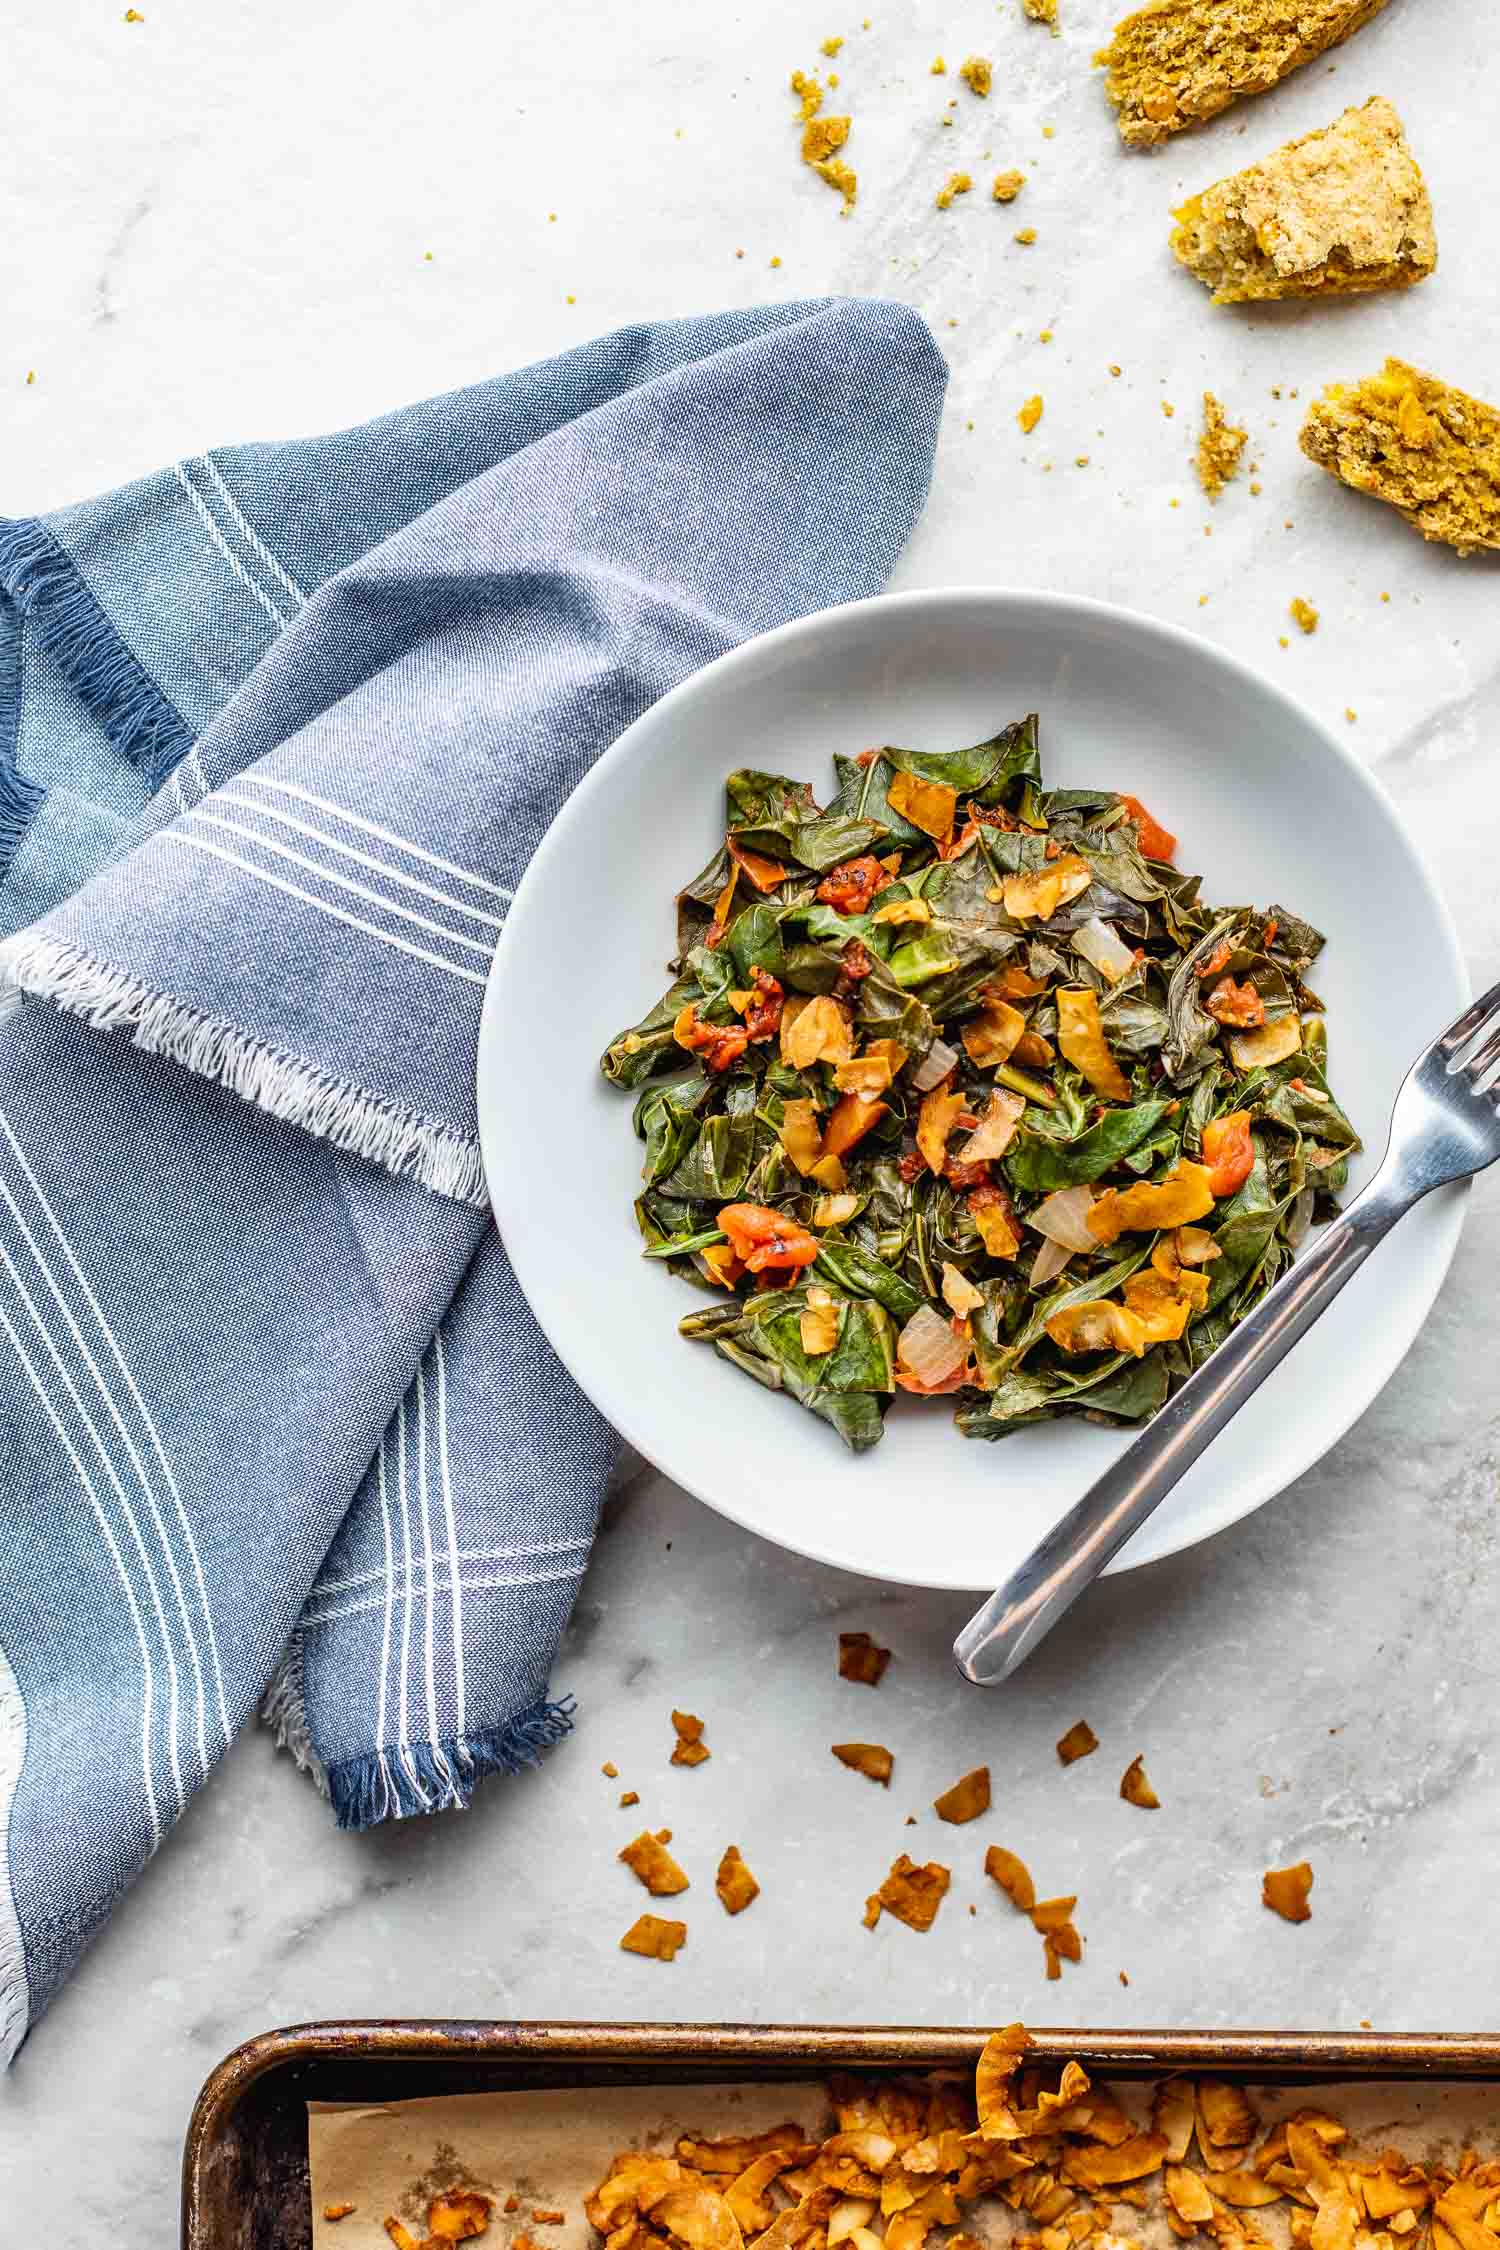 a pan of oven baked vegan bacon sits near a bowl of southern-style collard greens witha few pieces of cornbread scattered around on a white marble counter surface